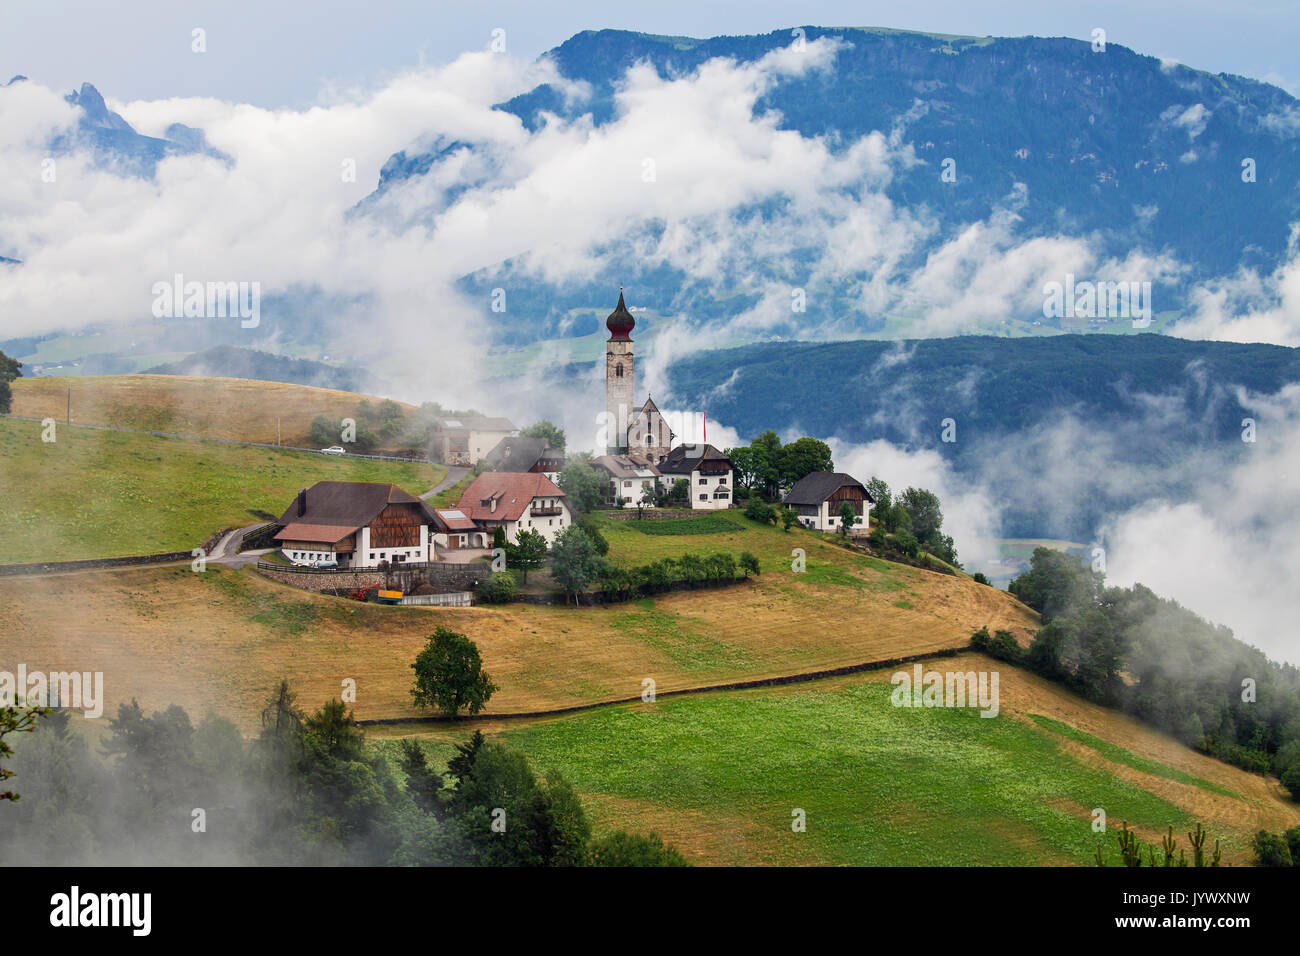 MONTE DI MEZZO, ITALY - JUNE 25, 2017: Village of Monte Di Mezzo with St Nikolaus Church;  situated in Dolomites, near  earth pyramids of Renon - Stock Image